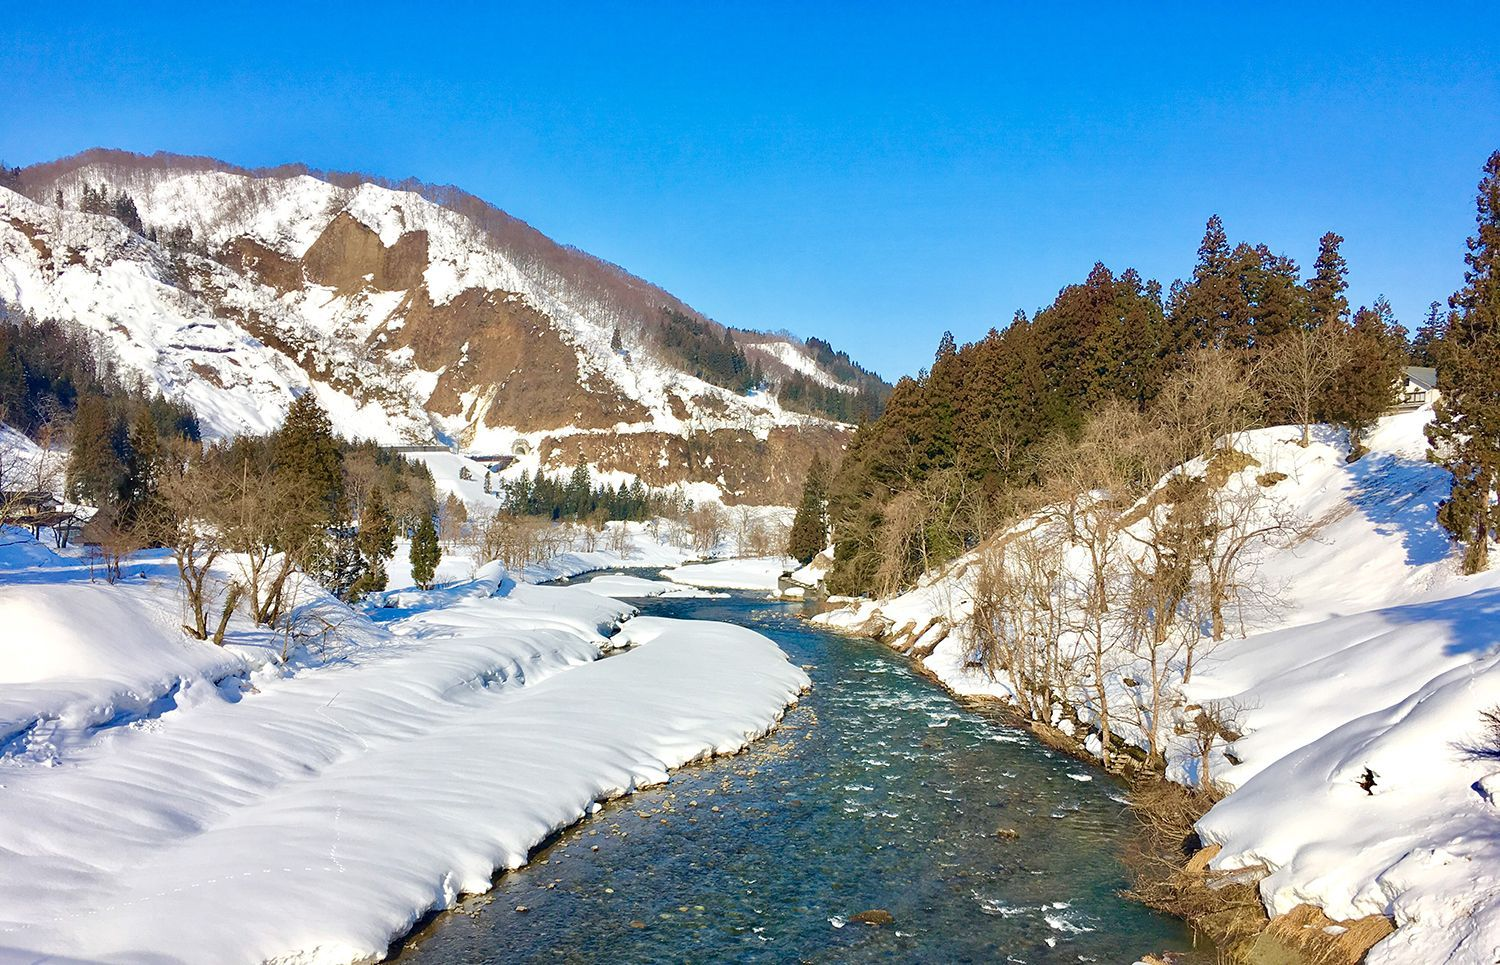 5 Coolest Things to Do in Tokamachi in Winter